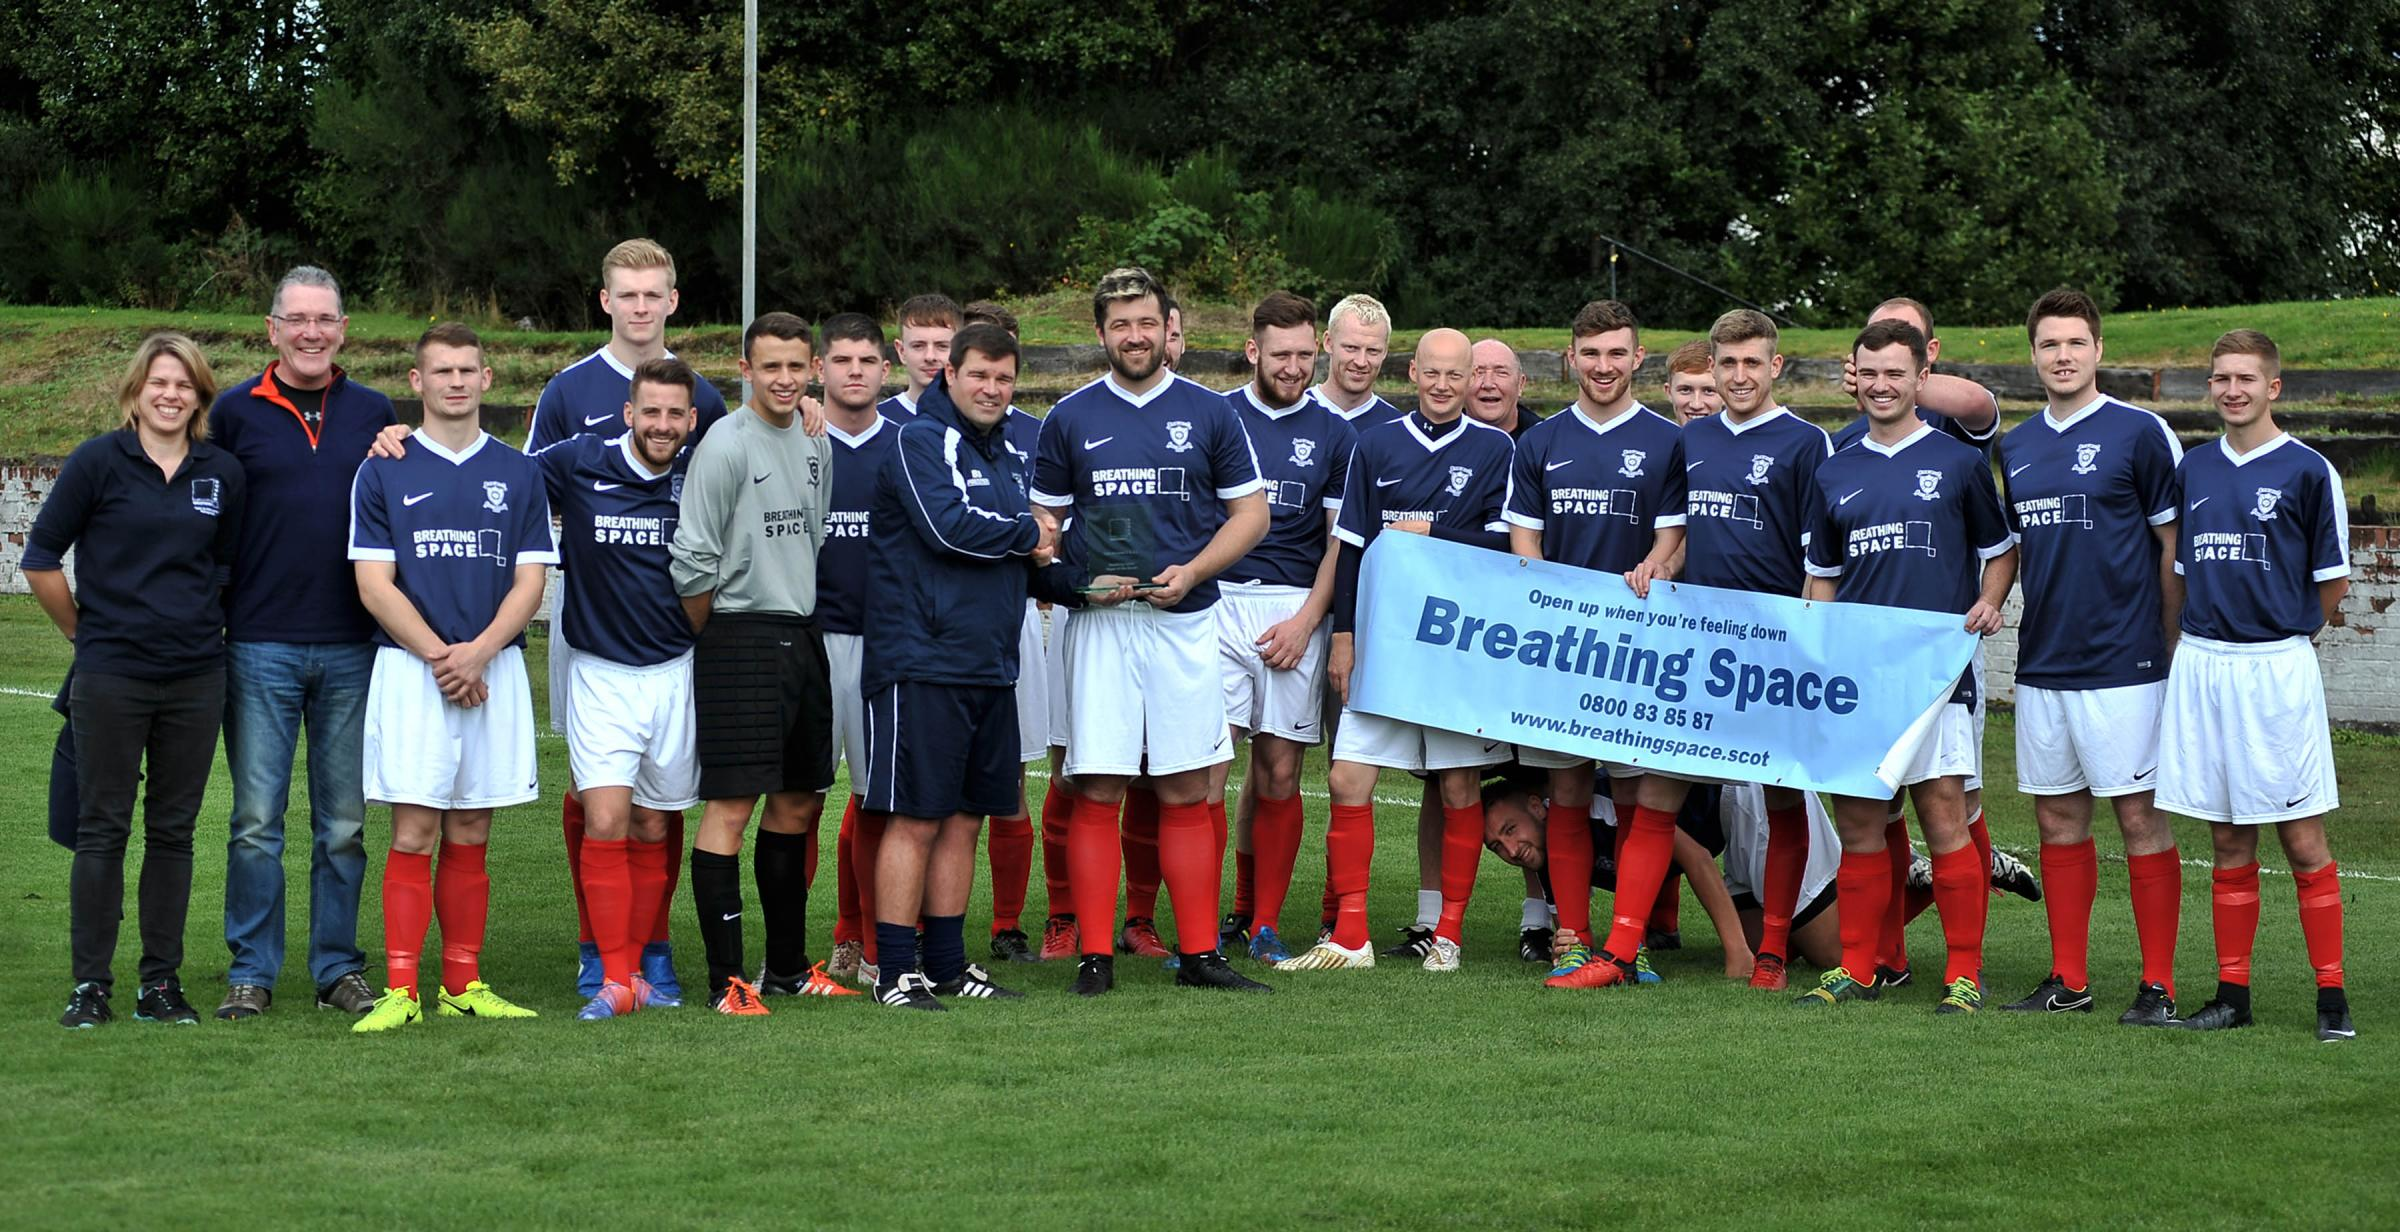 Vale of Leven's Breathing Space player of the month award goes to entire squad after outstanding performances